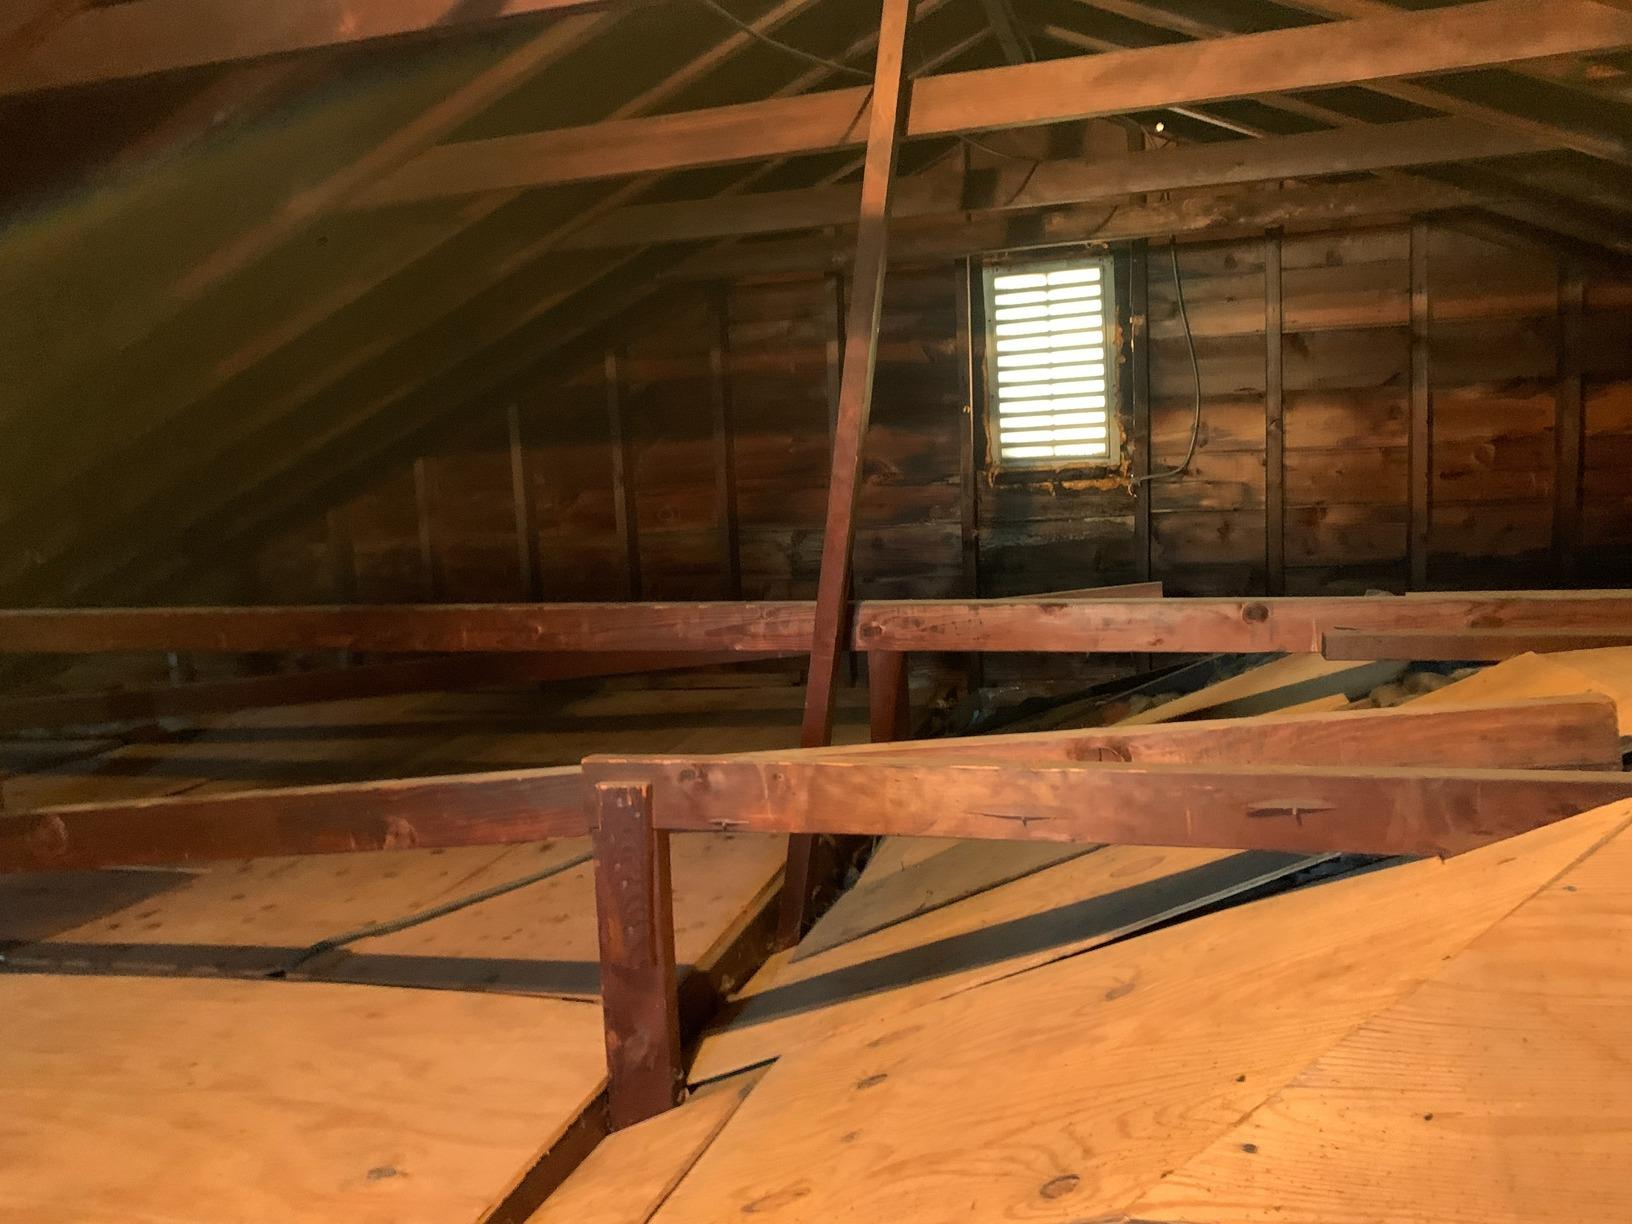 Blown in Cellulose Insulation in Attic - Flushing, NY - Before Photo